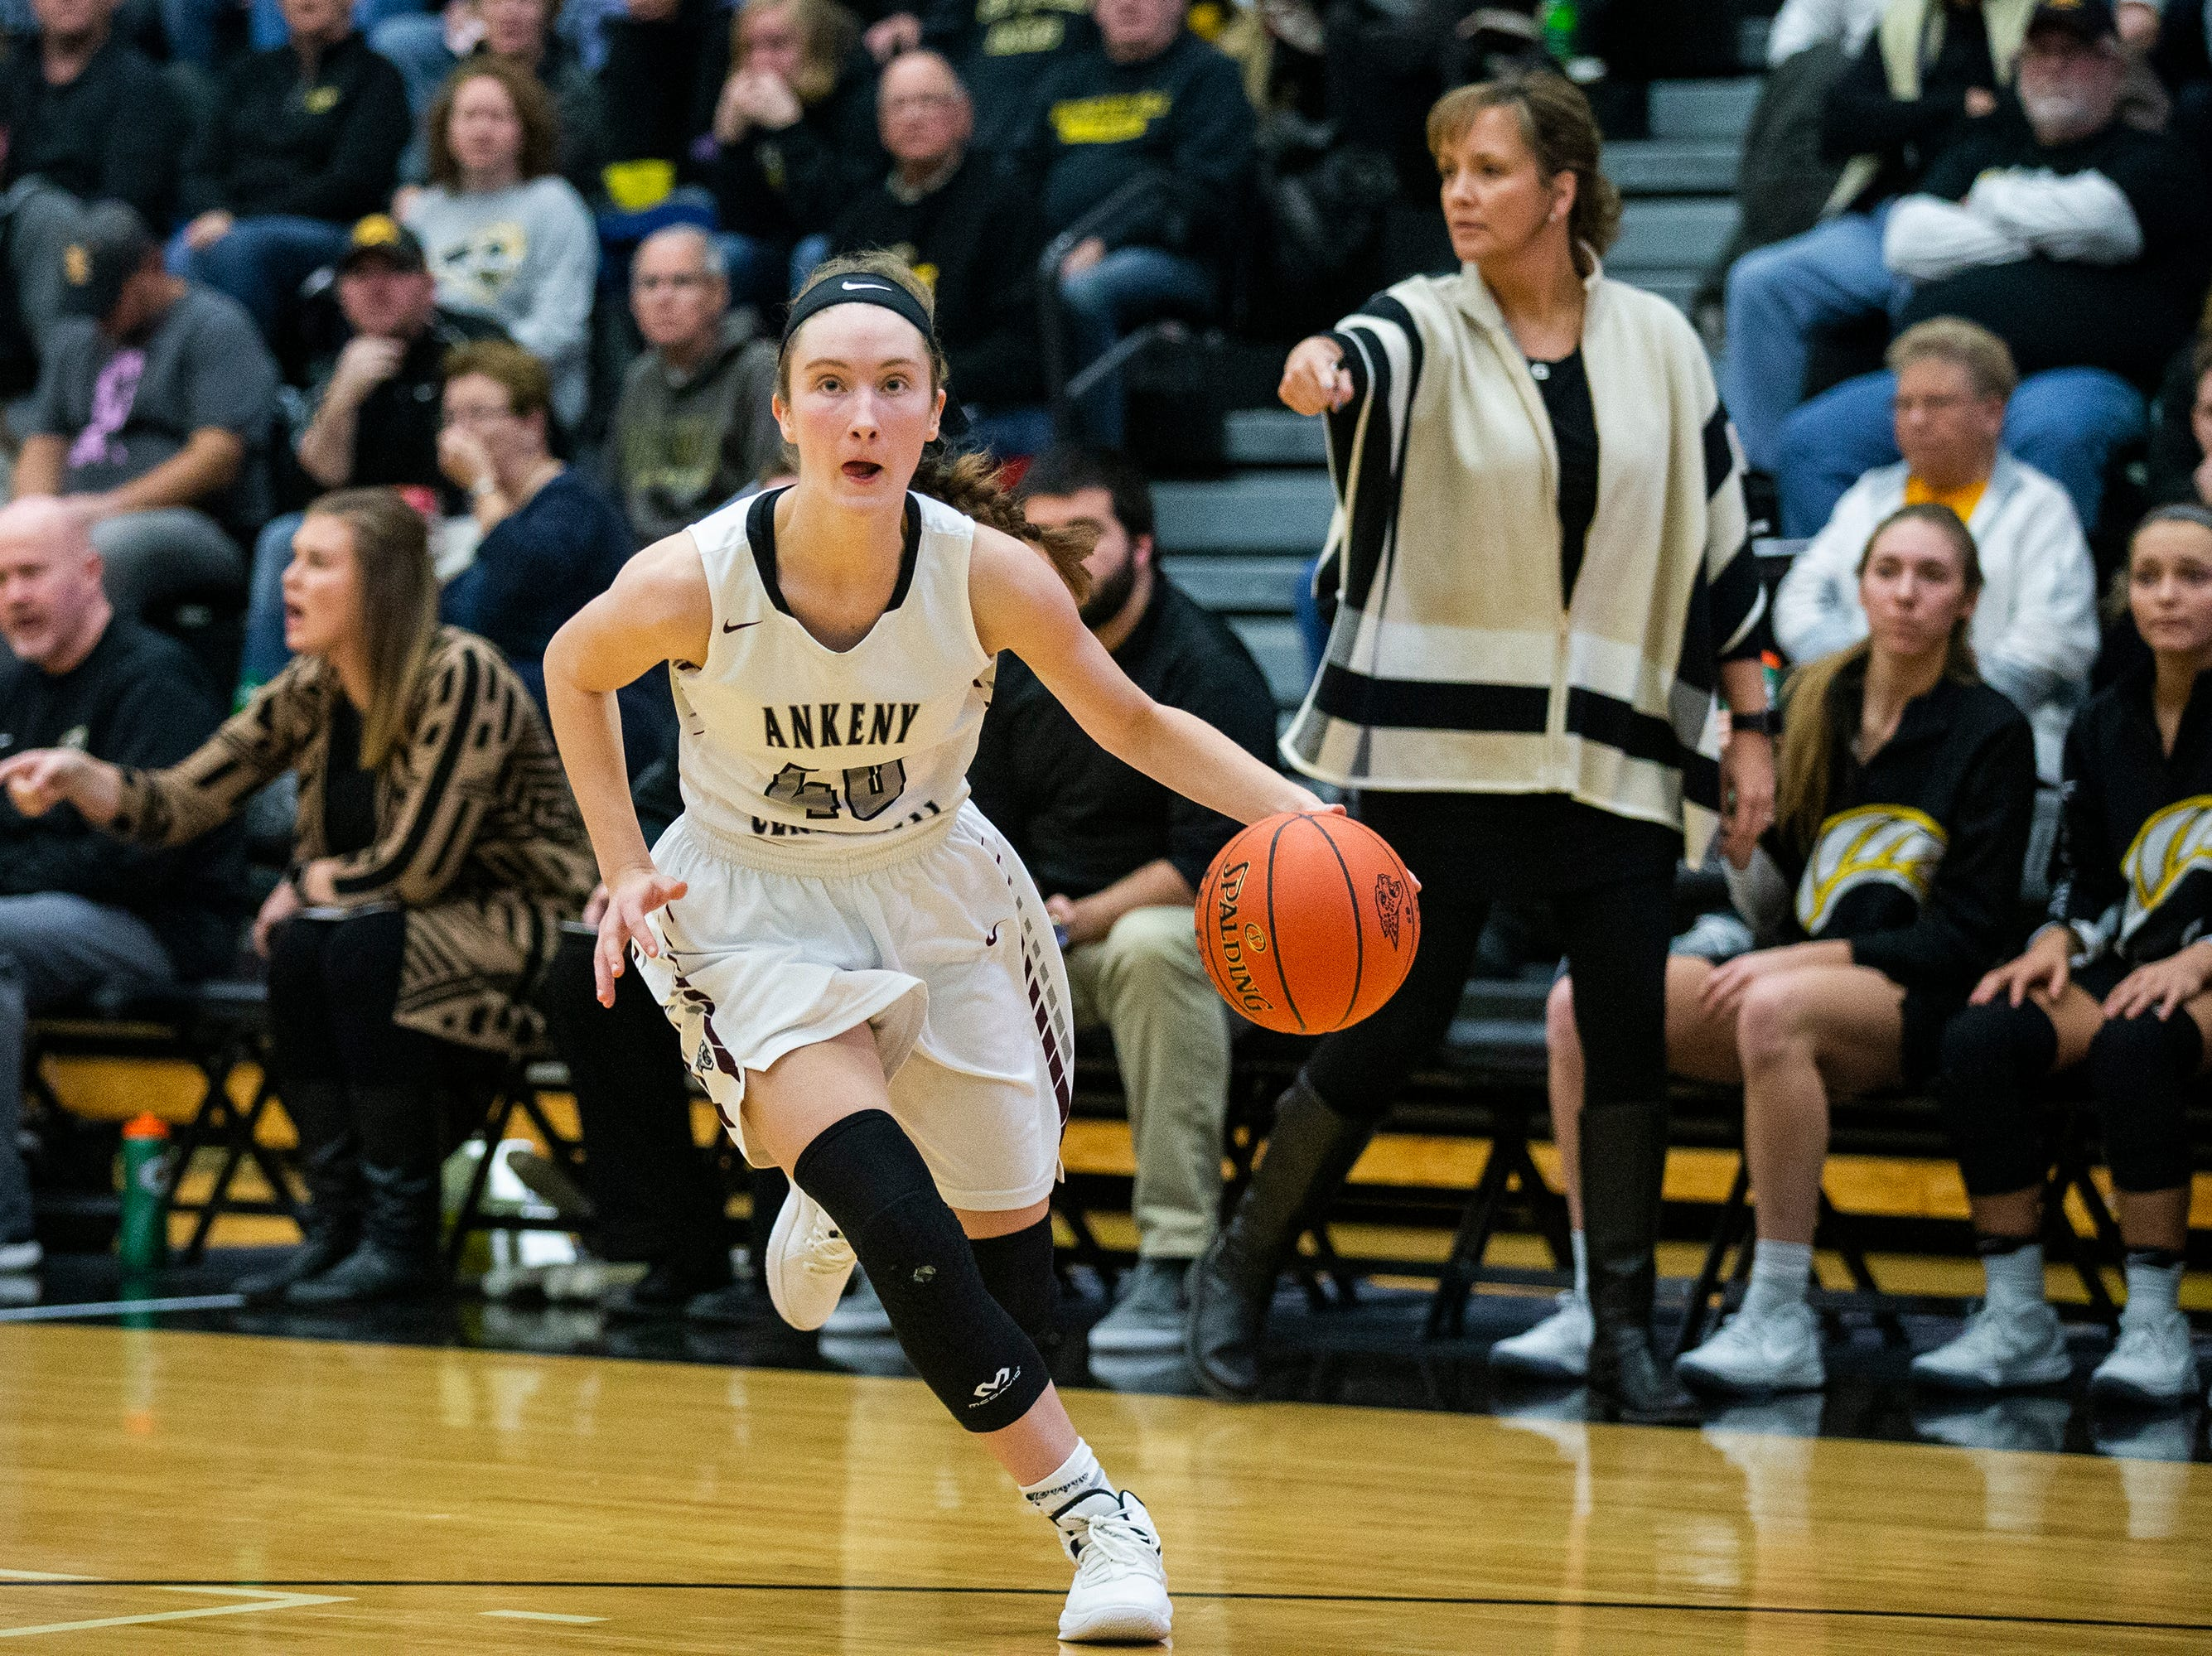 Centennial 's Meg Burns brings the ball down the court during the Southeast Polk vs. Ankeny Centennial girls' basketball game on Tuesday, Nov. 27, 2018, at Ankeny Centennial High School.